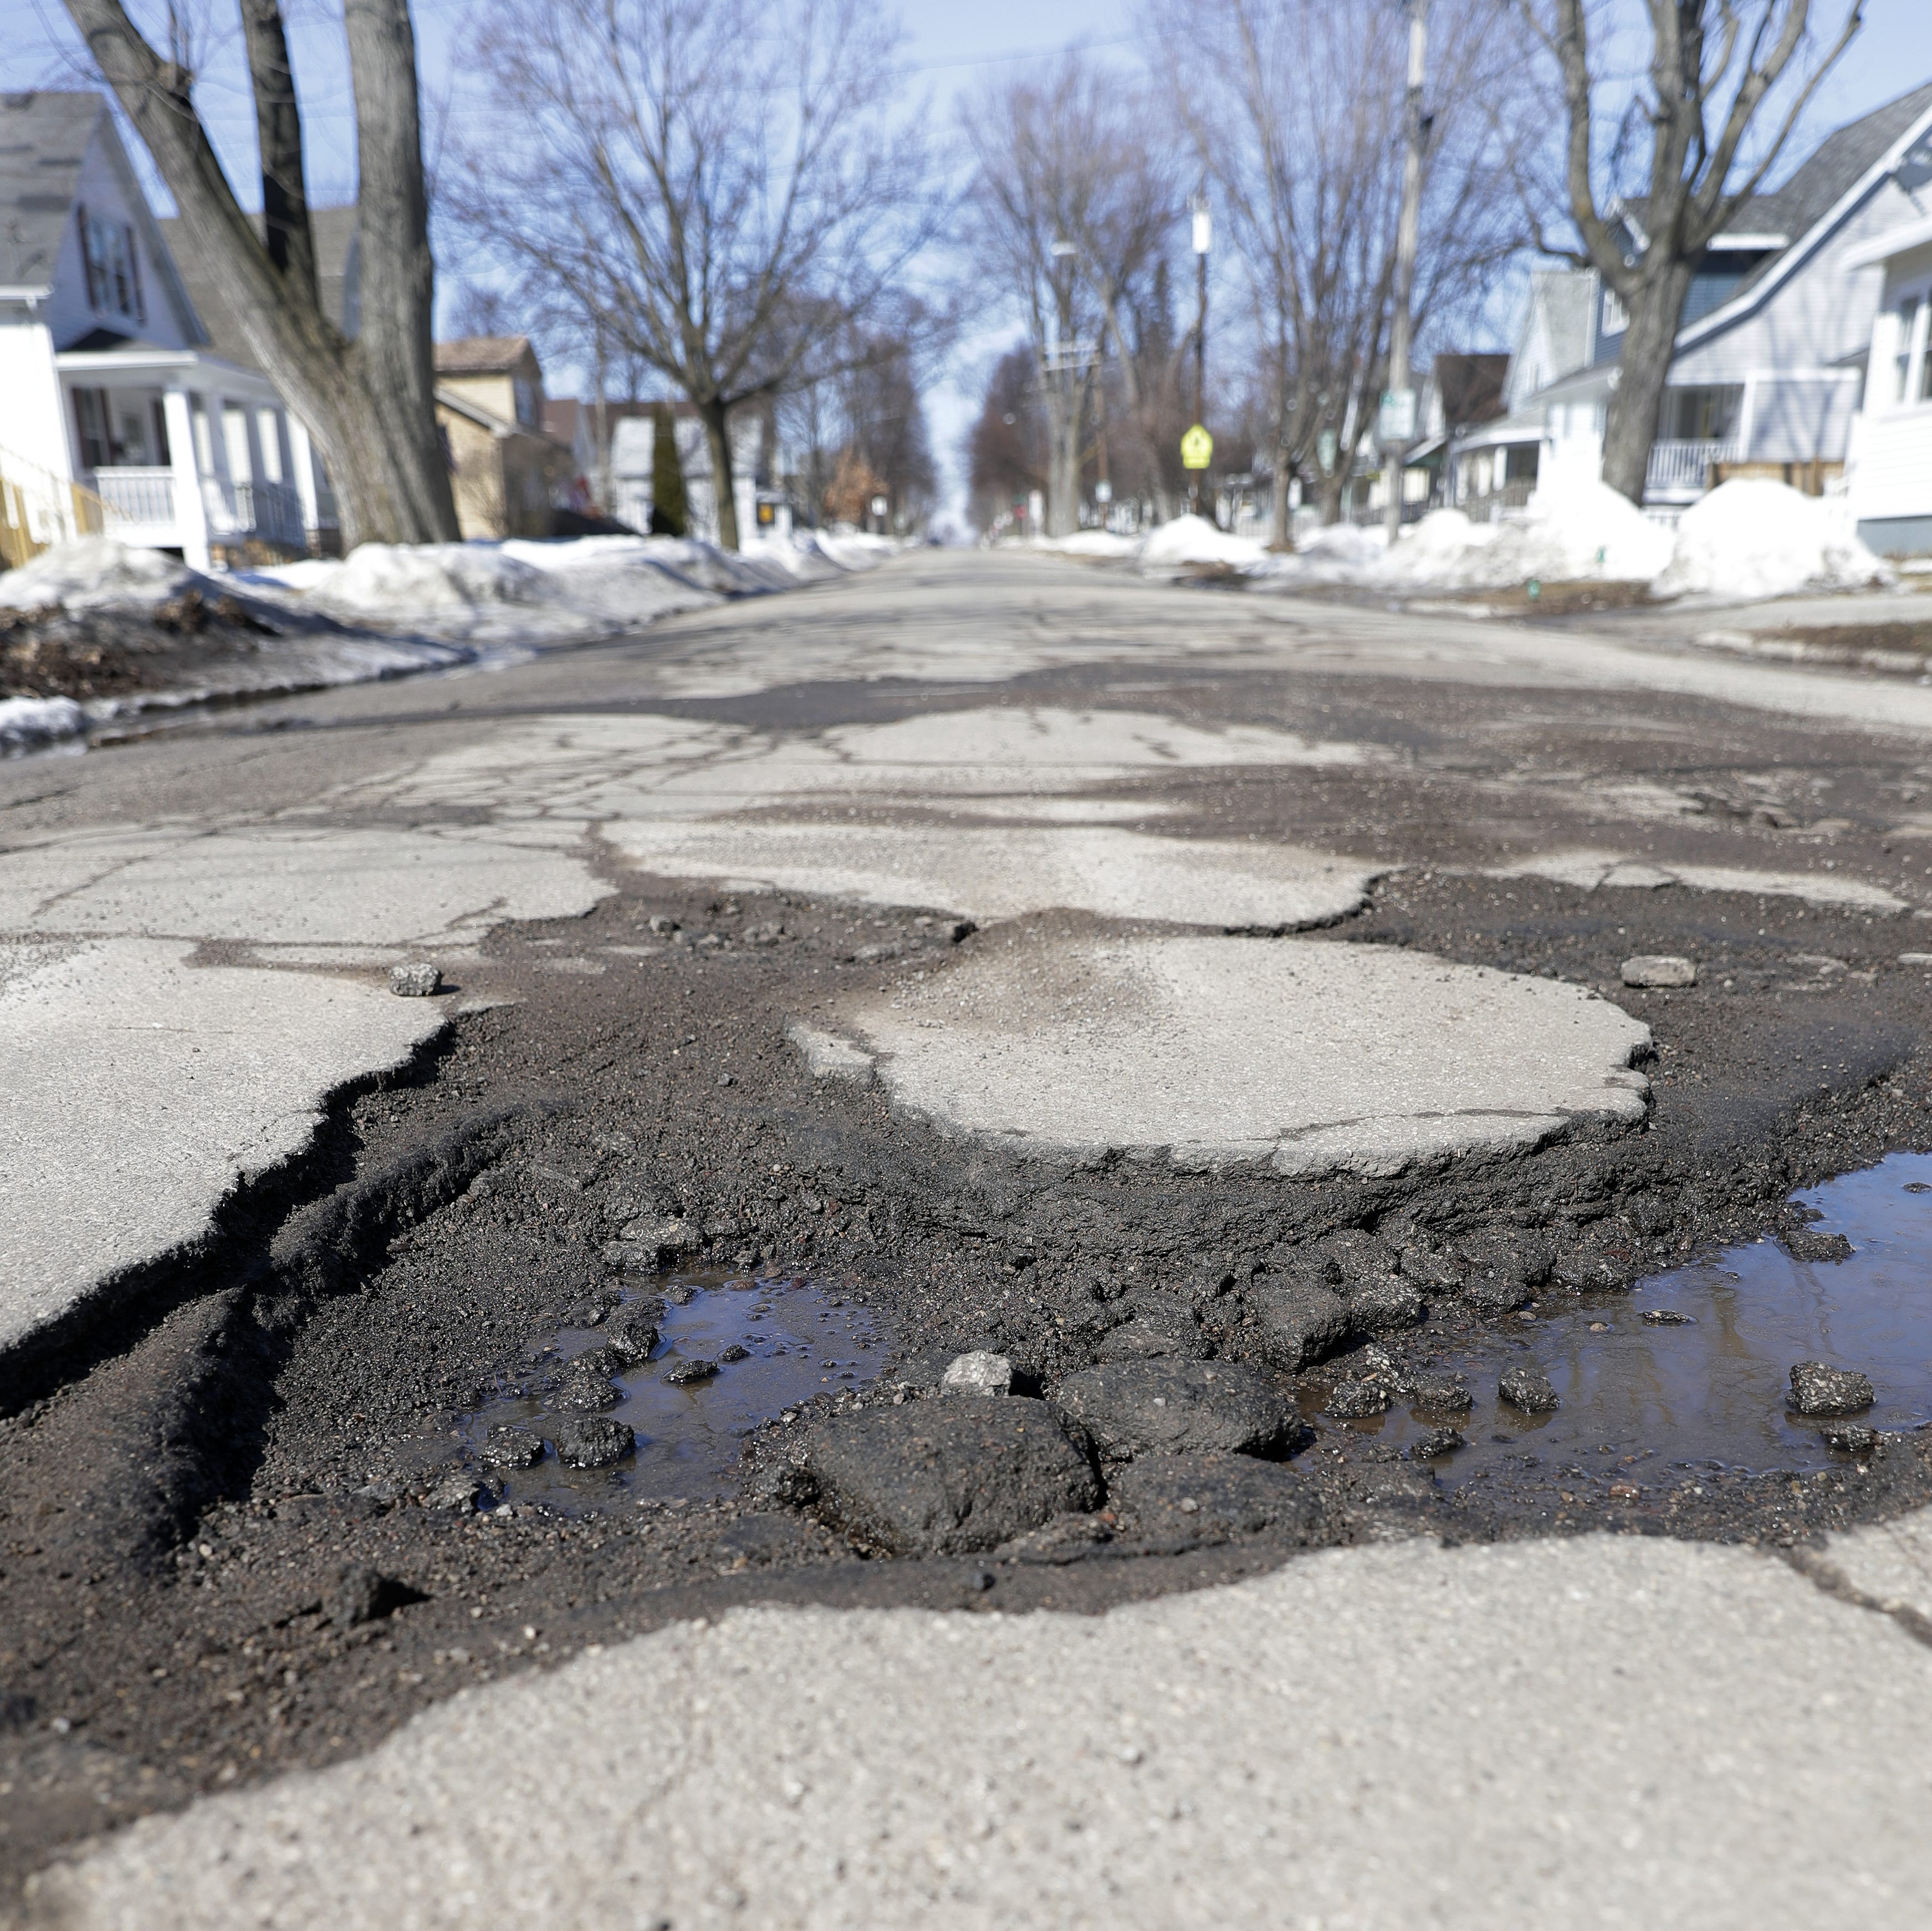 The snow is melting, but now we're dodging potholes around Green Bay